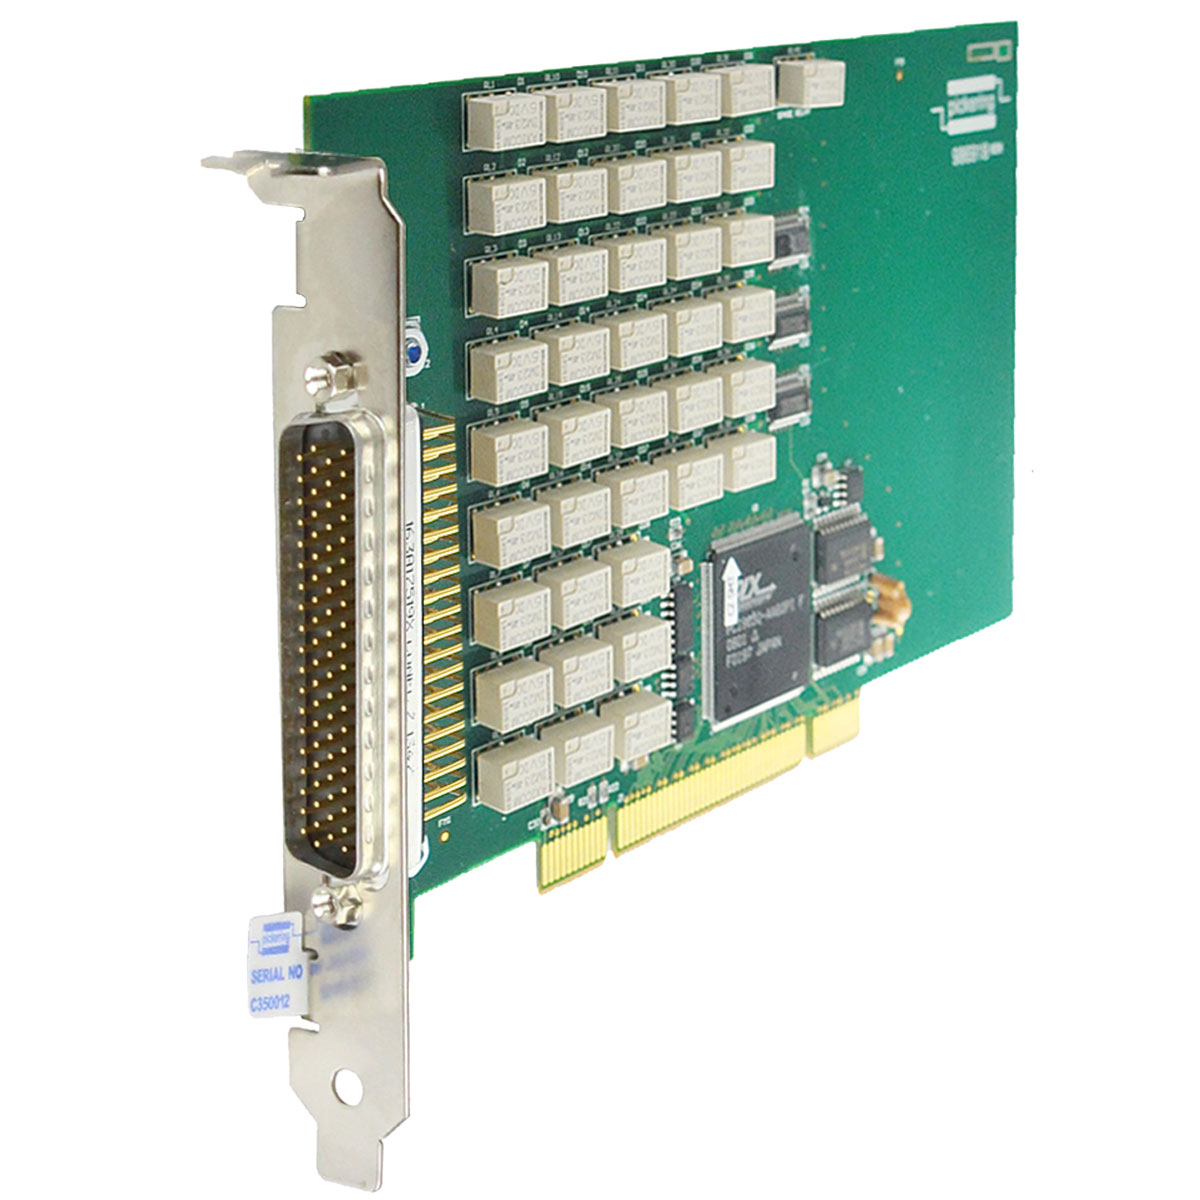 Pci 32xspst 2amp Relay Card 50 132 002 Solid State Canada